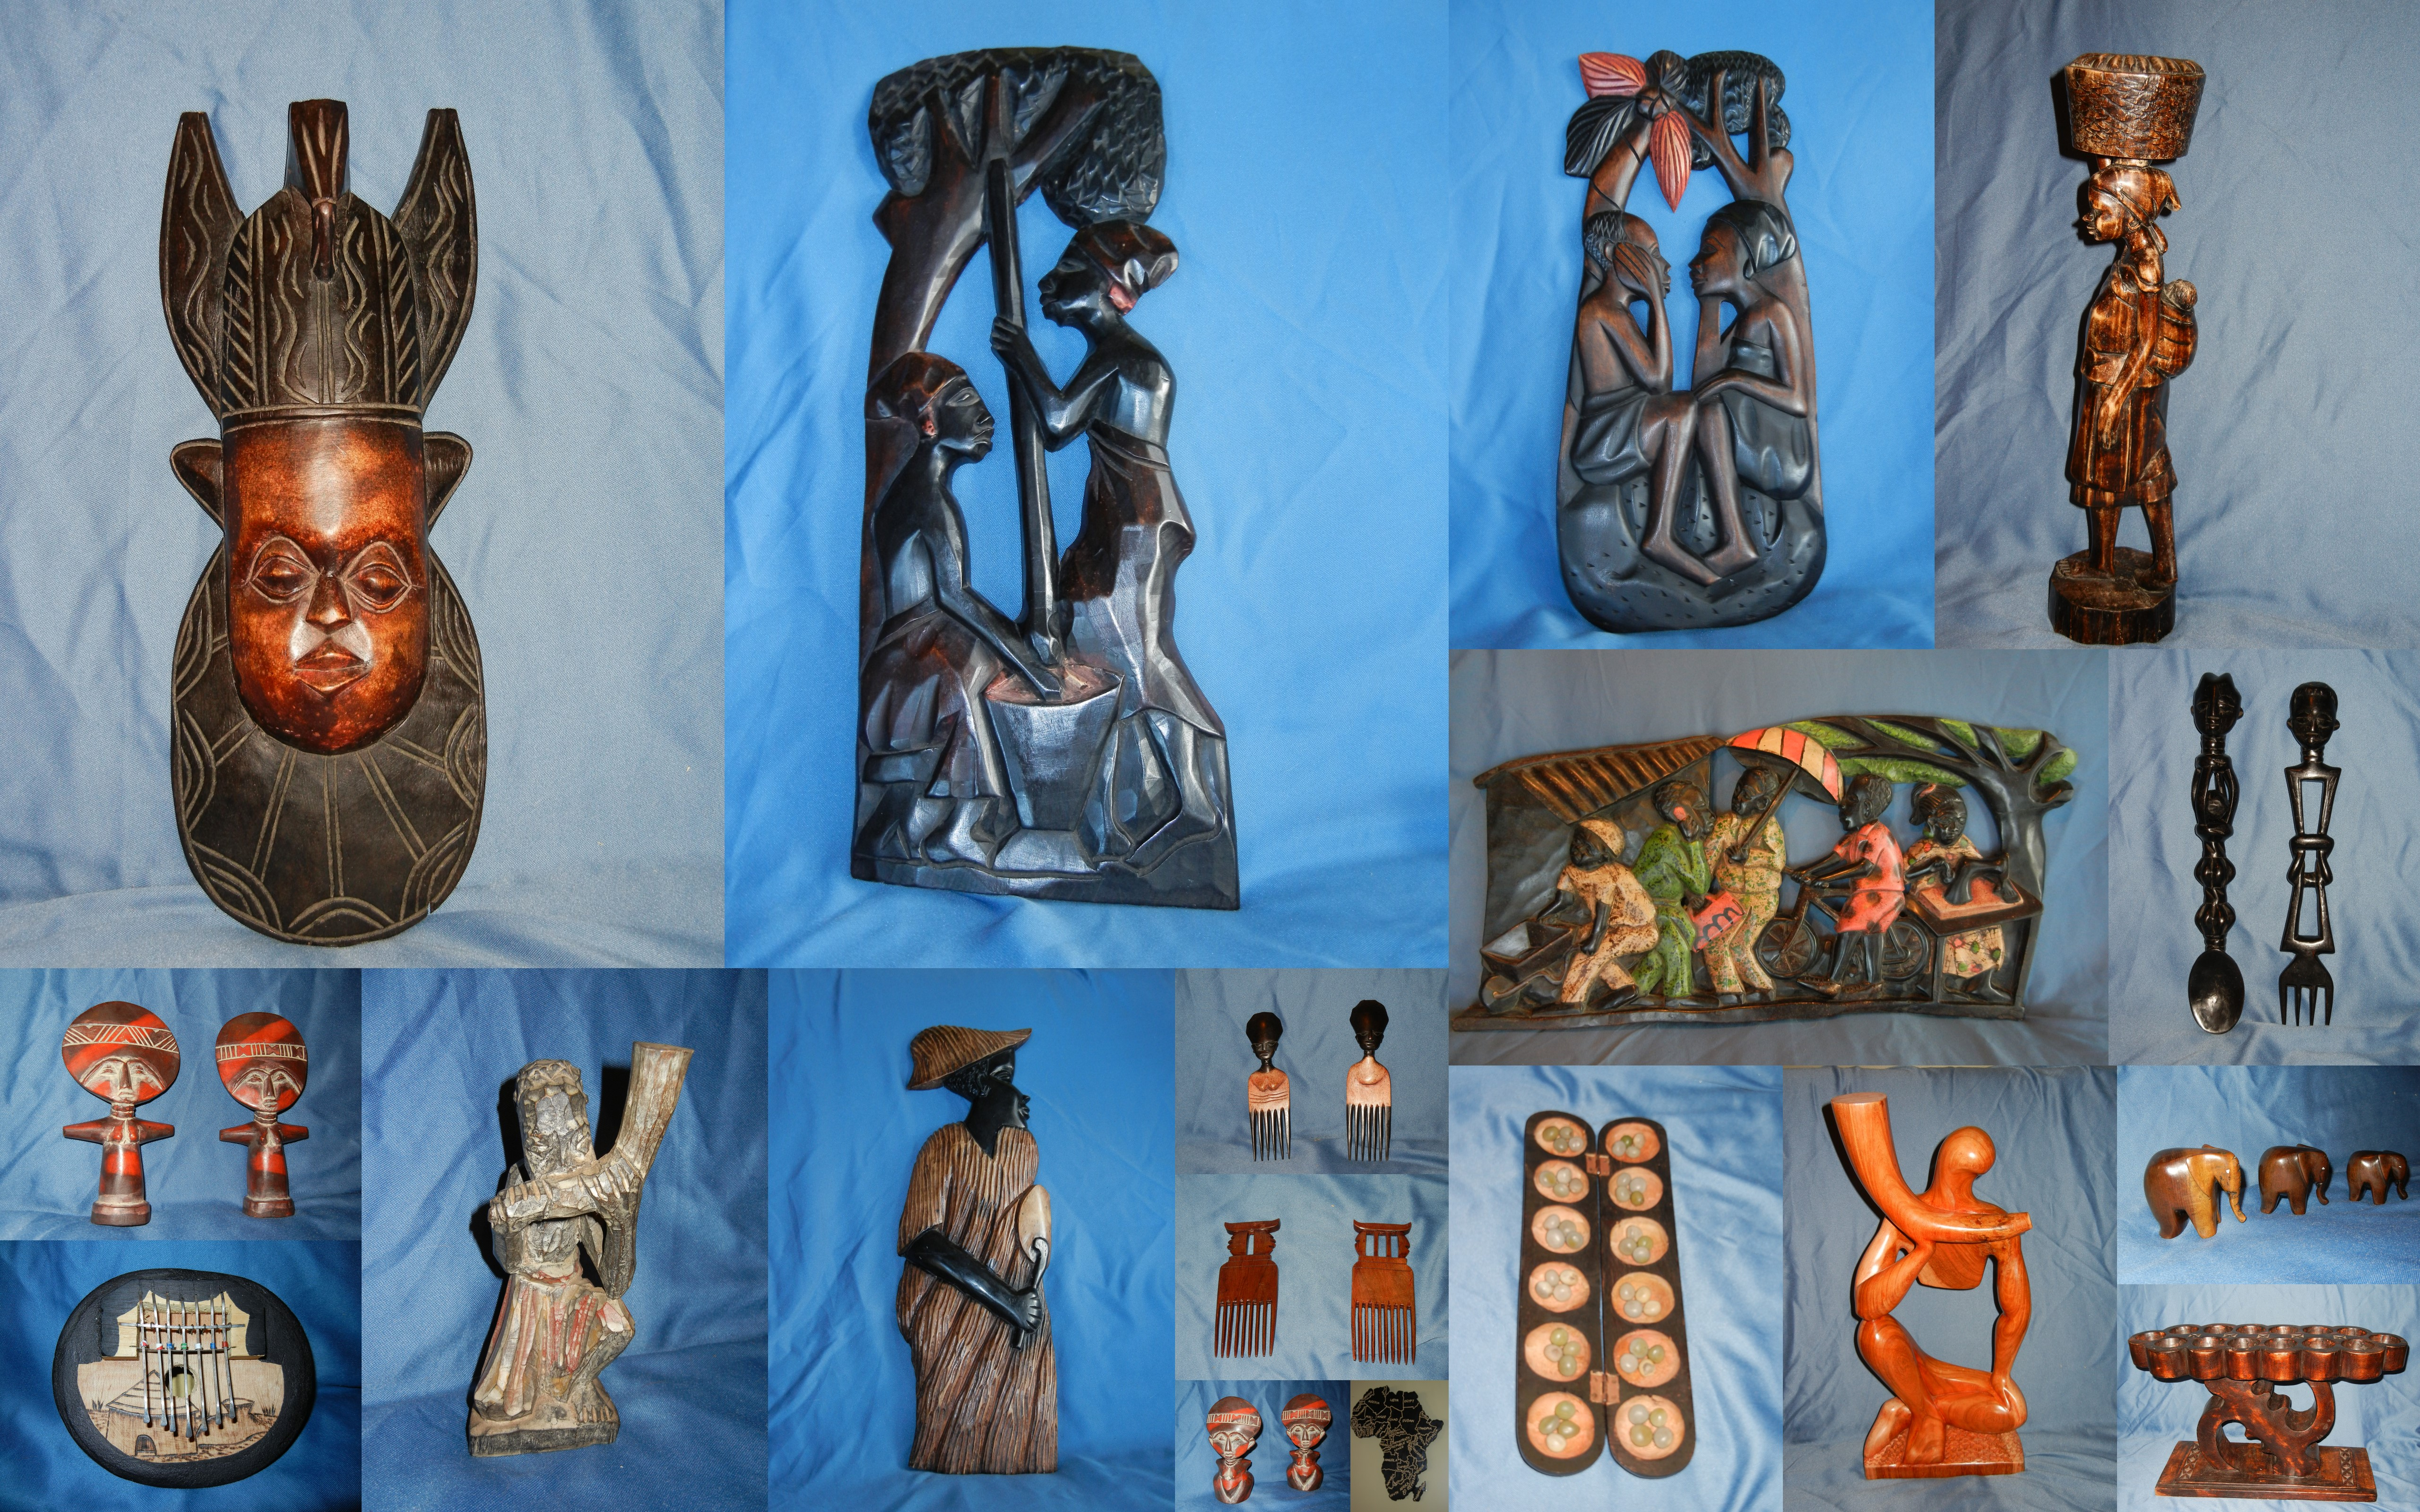 Handcrafted wooden carvings from Ghana, West Africa